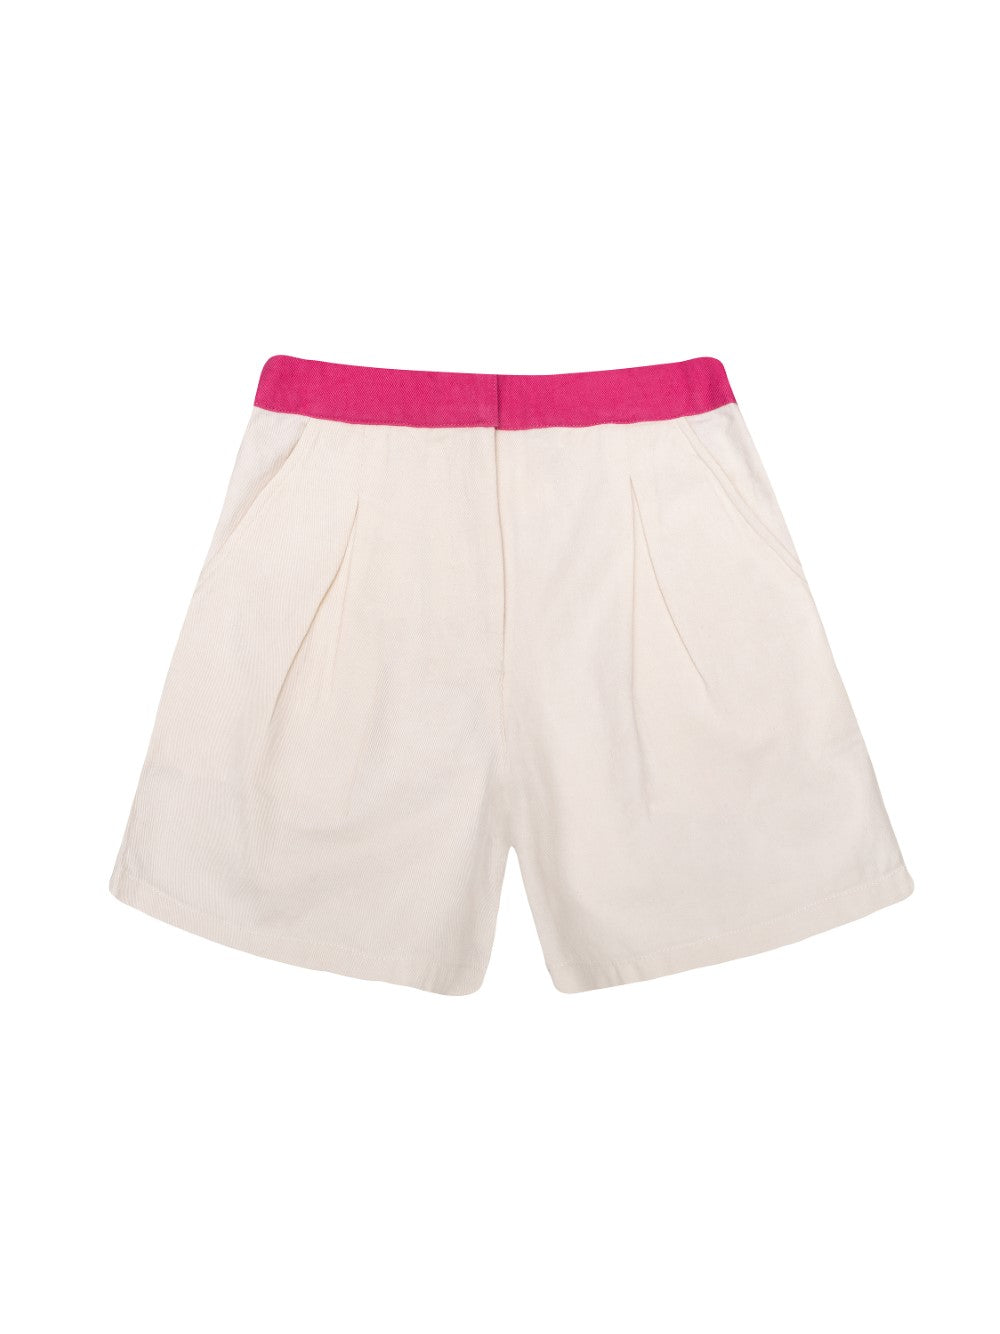 Ecru and Pink Shorts